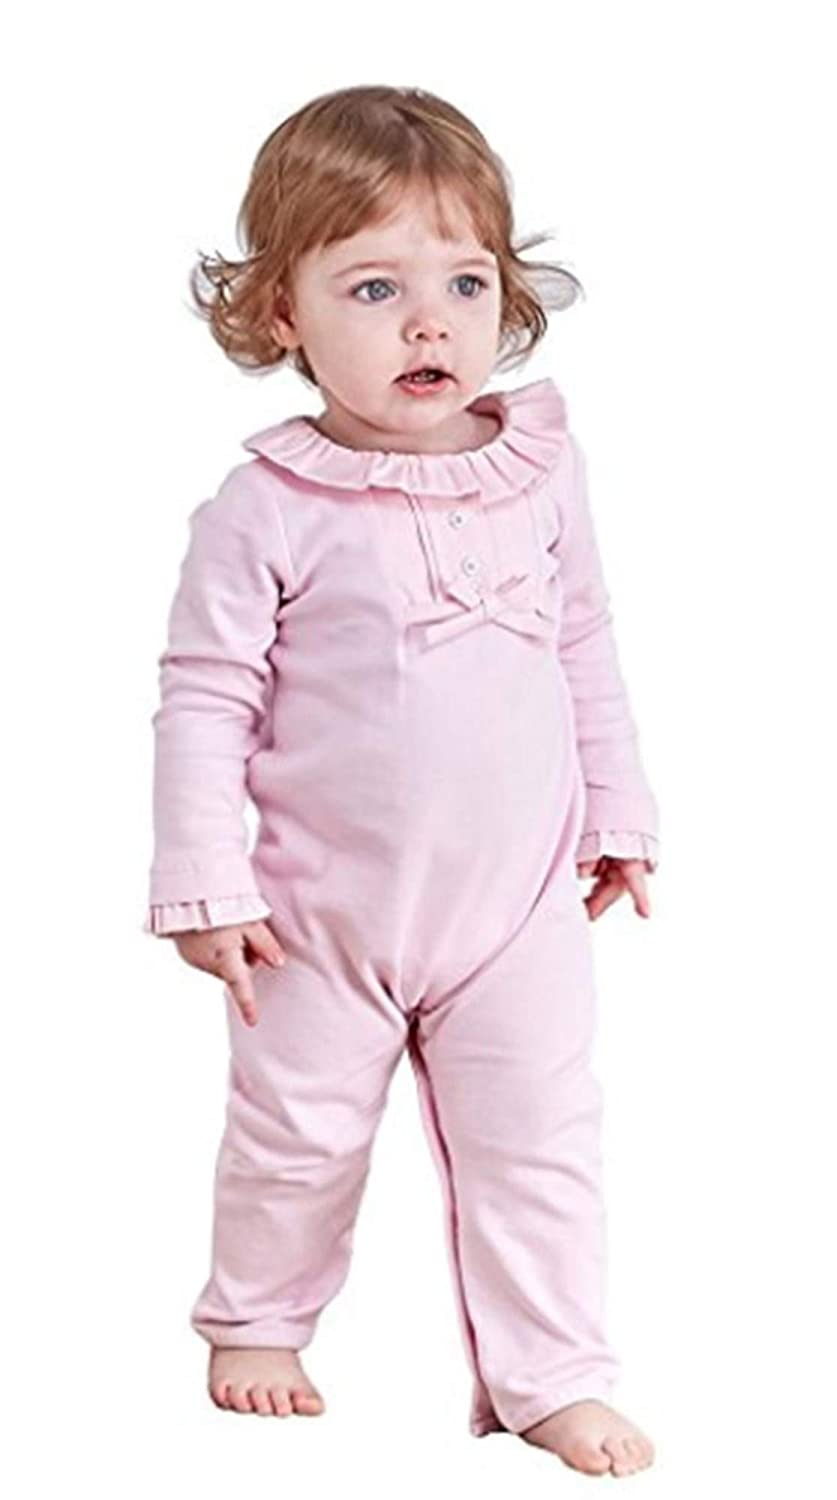 Anna King Baby Kids Romper Fashion Cotton Baby Jumpsuit Long Sleeve Baby Girls Boys Christmas Outfits Unisex Romper Sets